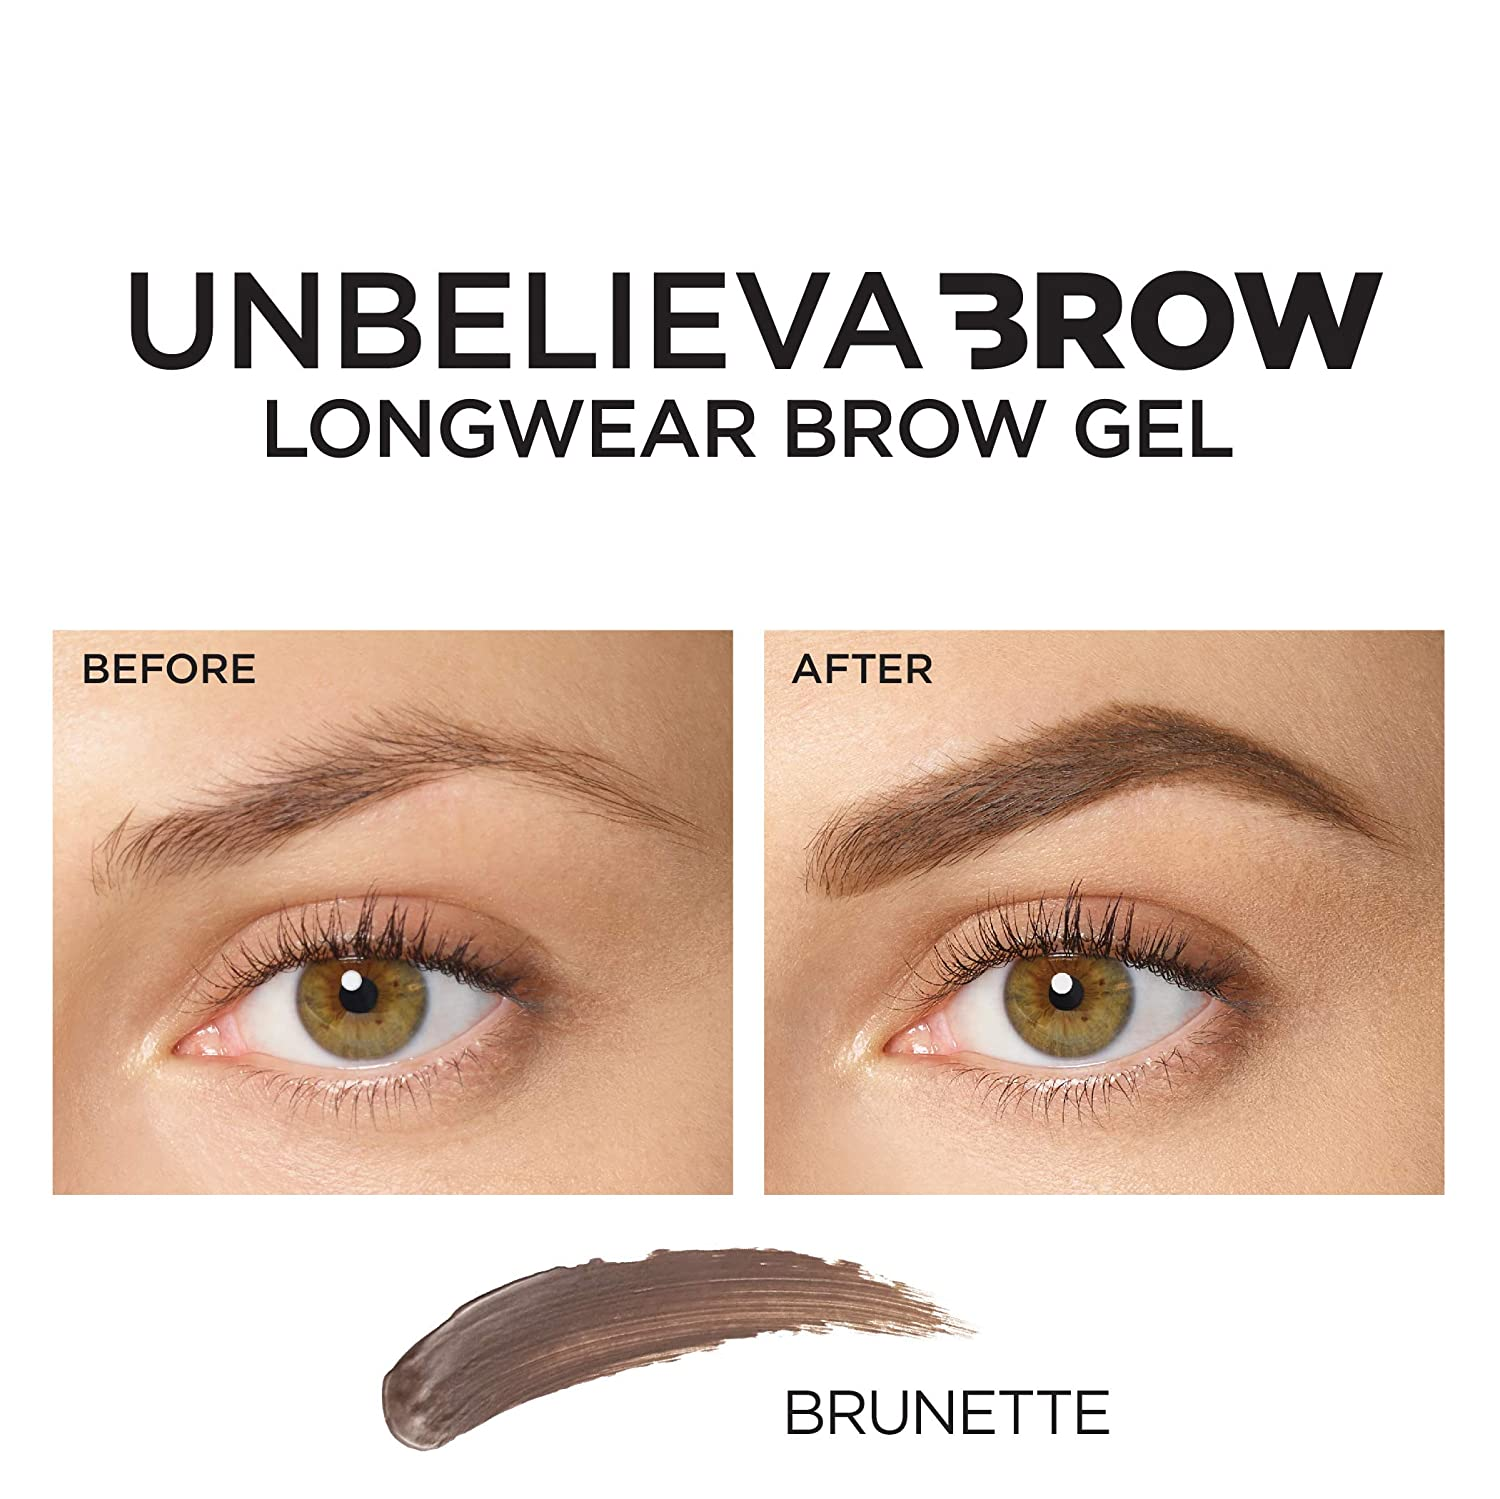 a7b8fd6113fa Amazon.com: L'Oreal Paris Unbelieva-Brow Tinted Brow Makeup, Longwear,  Waterproof Brow Gel, Sweat Resistant, Transfer Proof, Fills and Thickens  Brows, ...